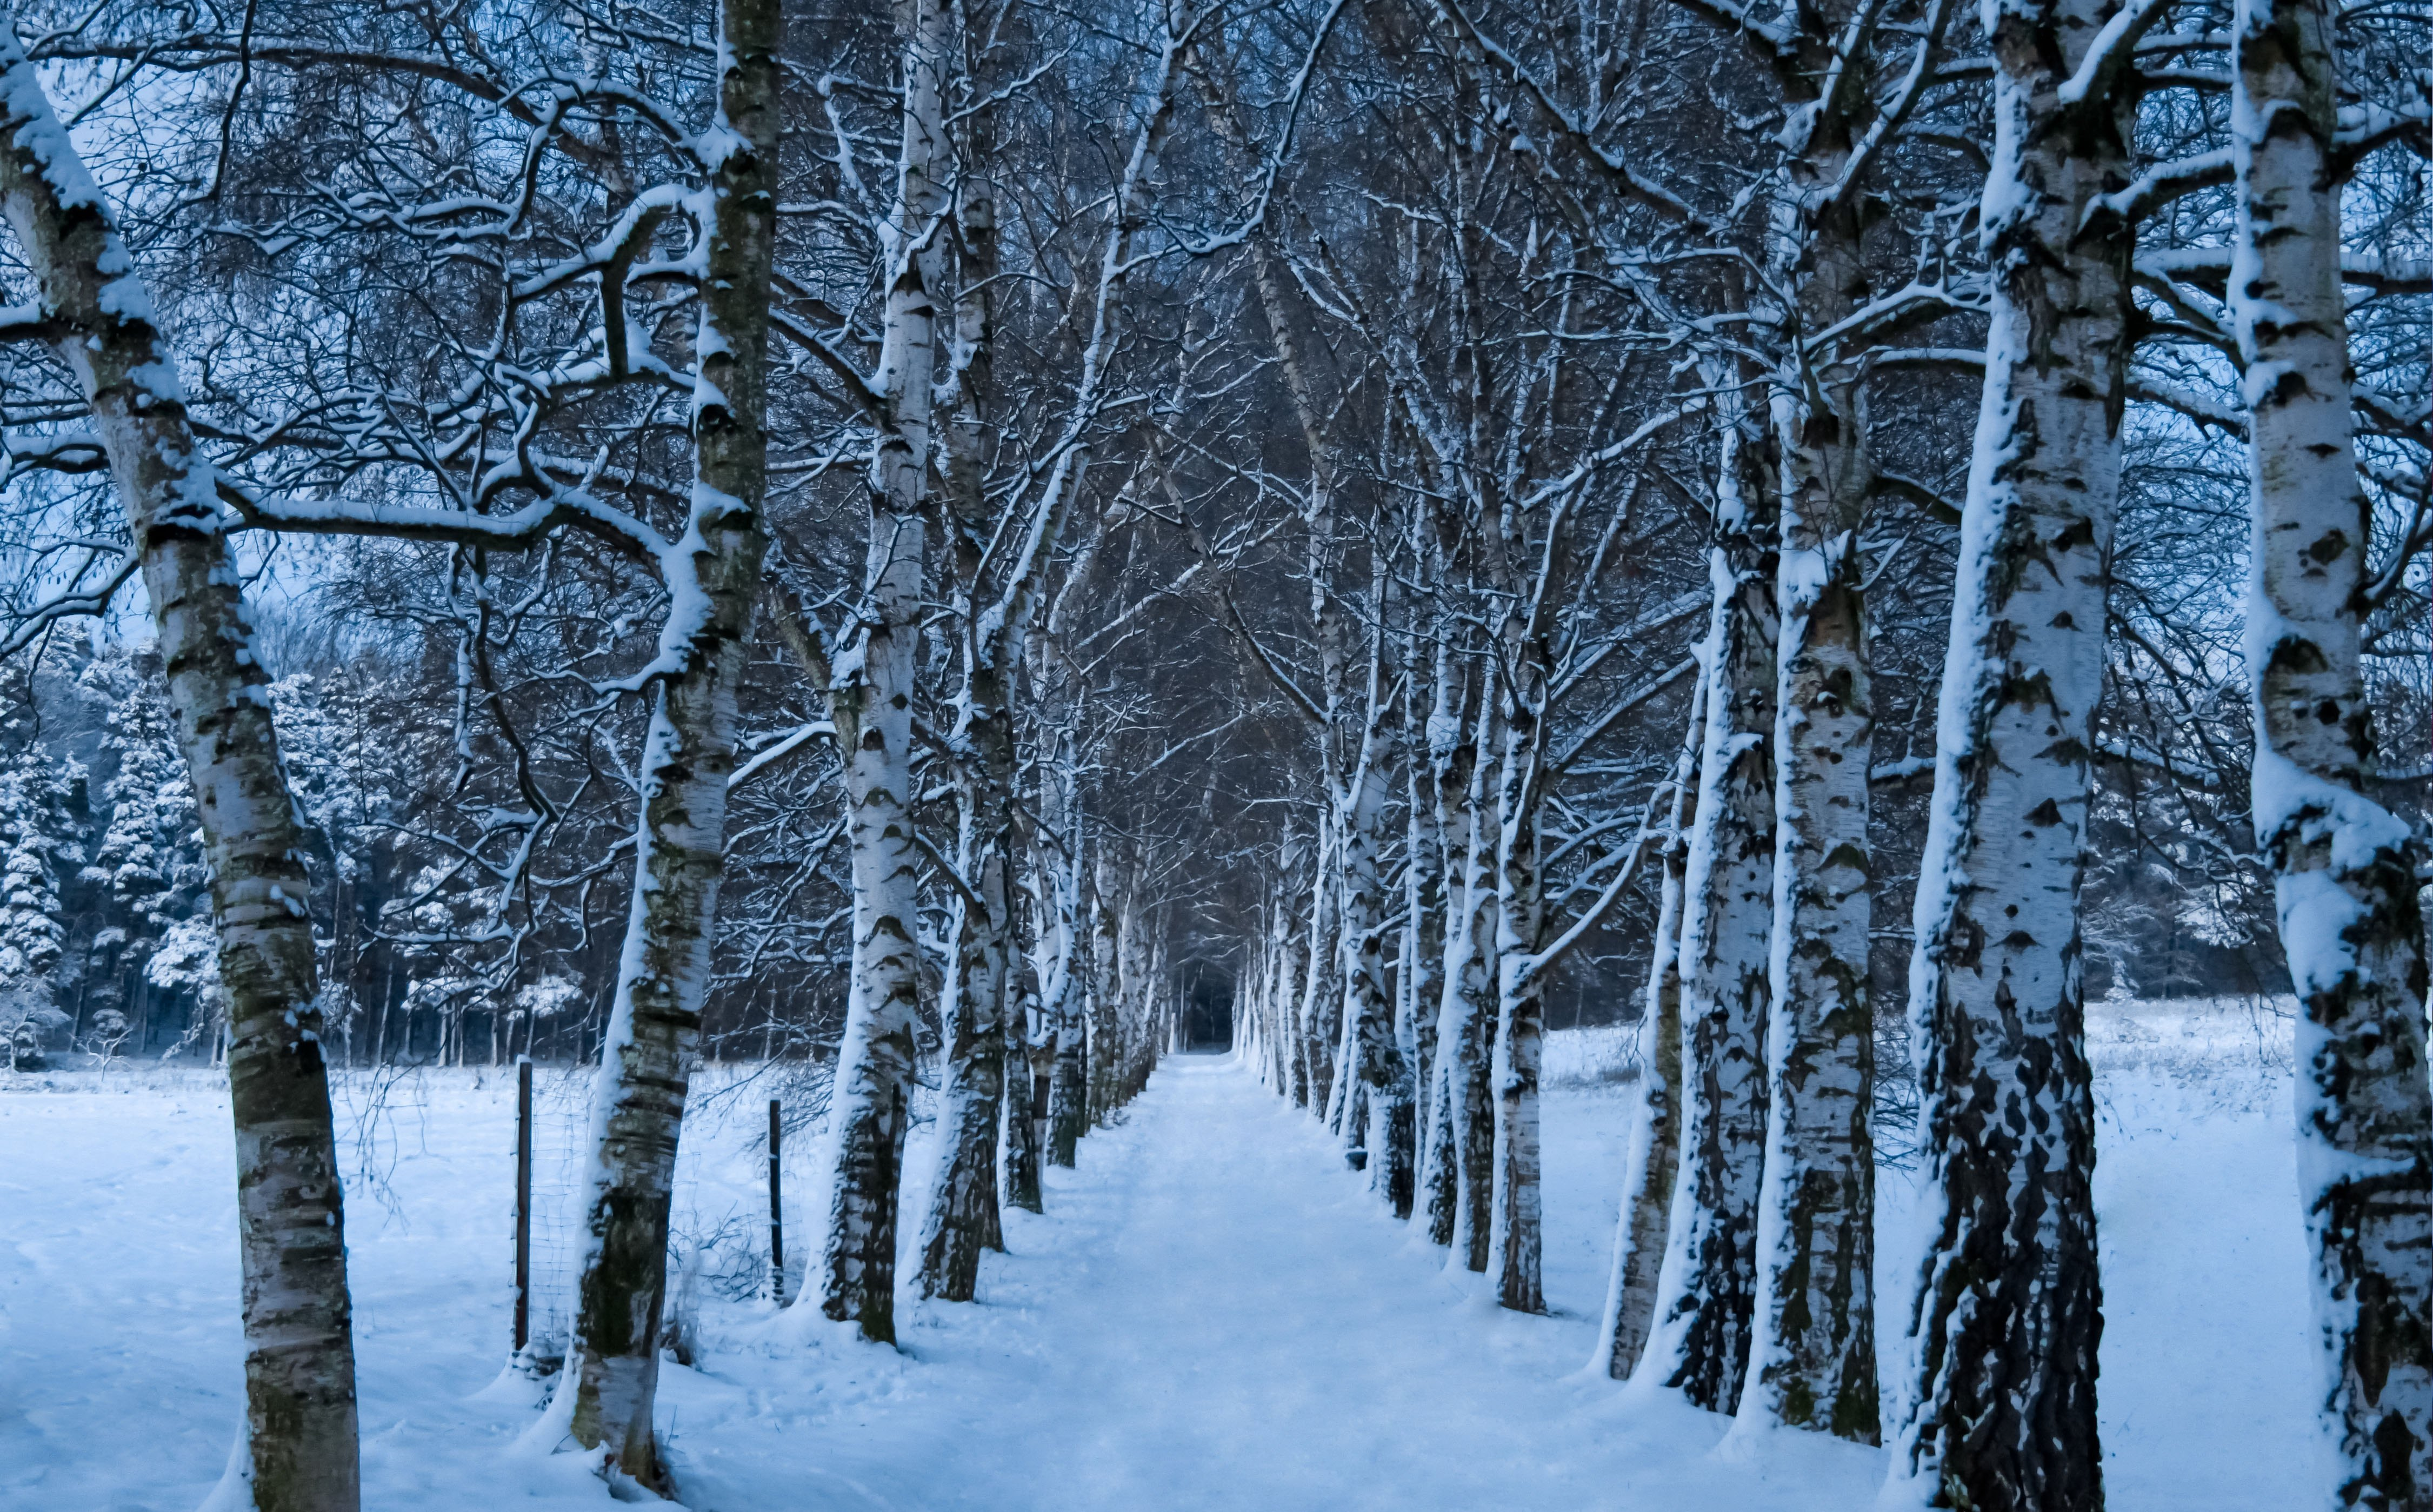 High Resolution Wallpaper Winter: High Resolution Wallpaper Of Winter, Picture Of Snow